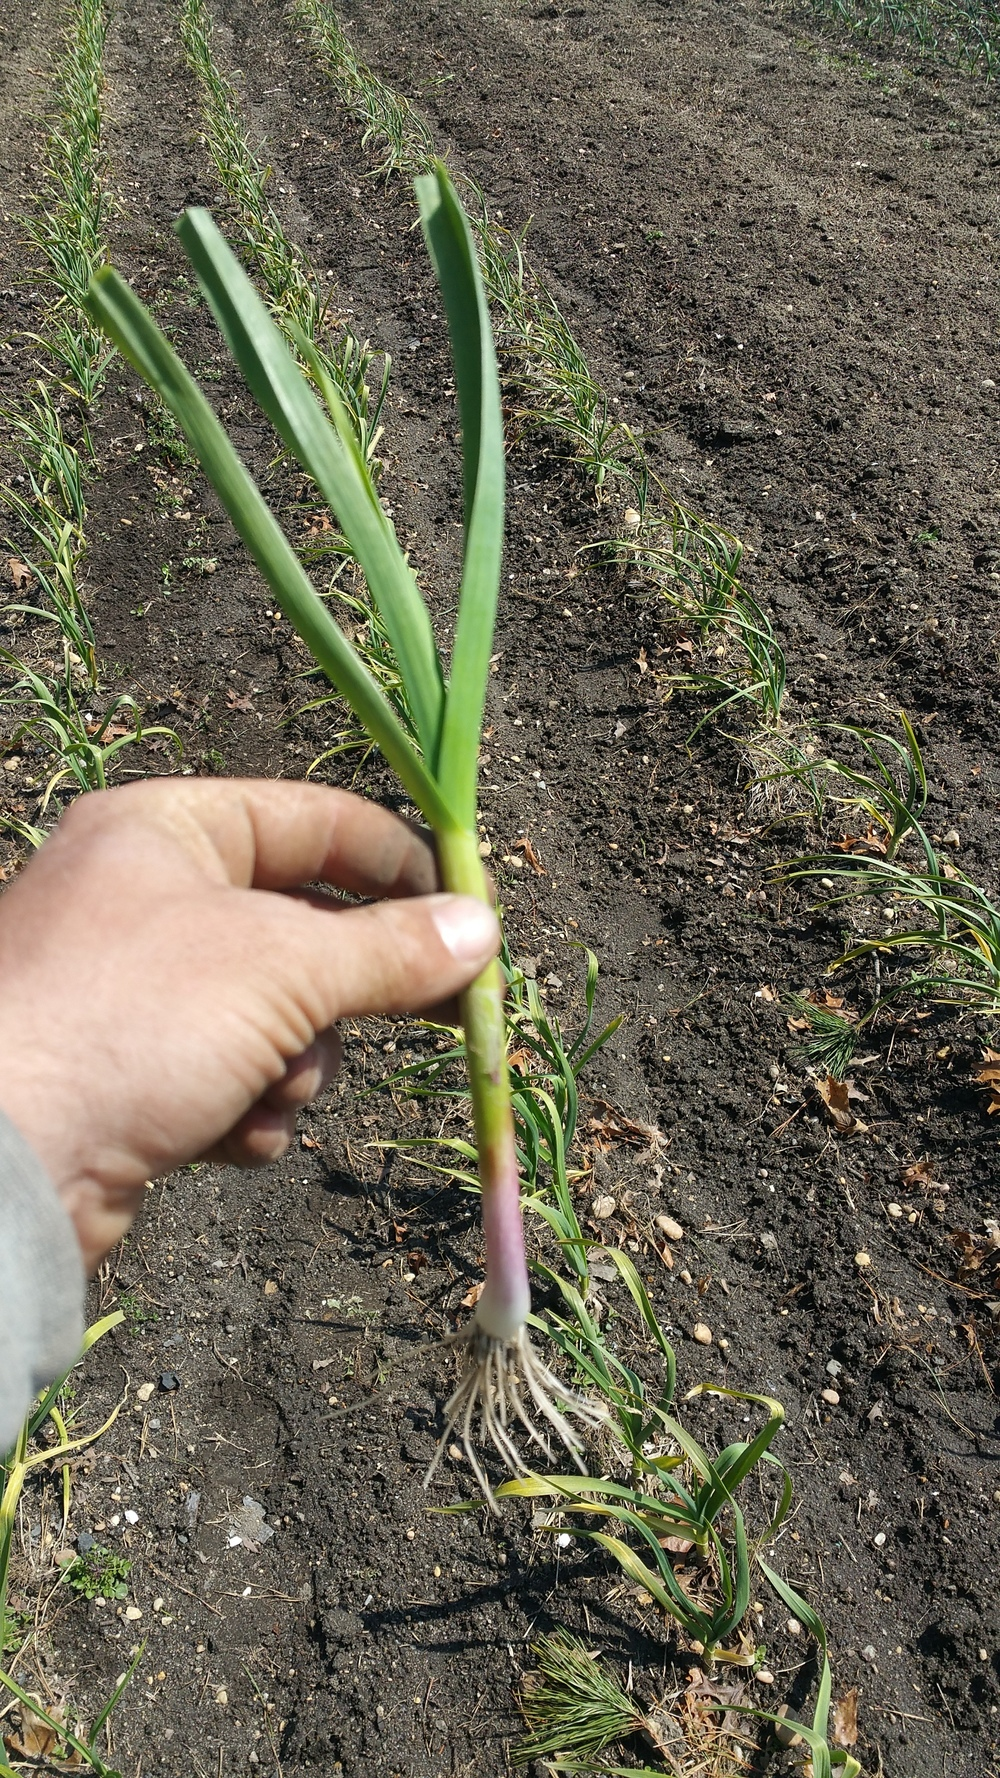 Spring garlic in May 2016, an early spring treat, used in culinary like a green onion or scallion.